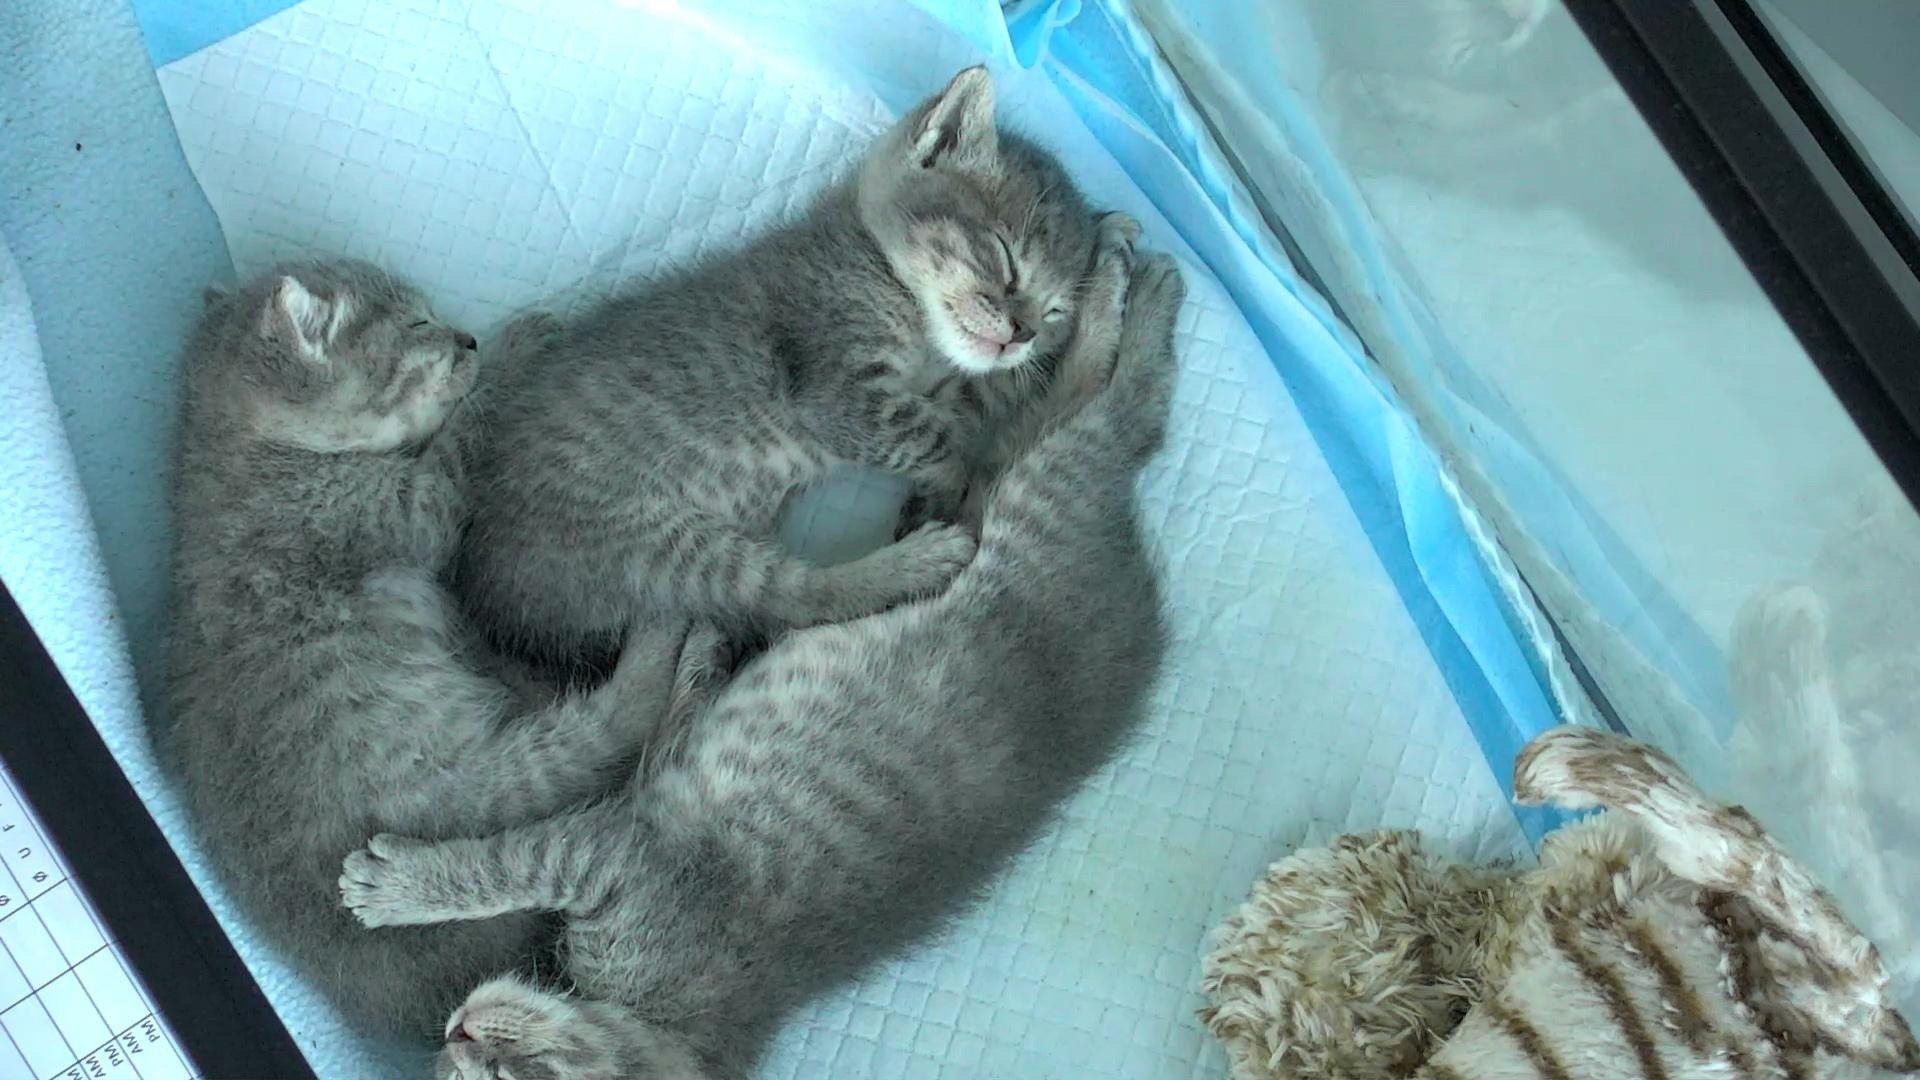 Live Kitten Cam Watch Cute Kittens Playing Explore Org Kitten Kittens Cute Cam Playing Cats Rescue Explore Baby Kitt In 2020 Kitten Rescue Kittens Cat Rescue